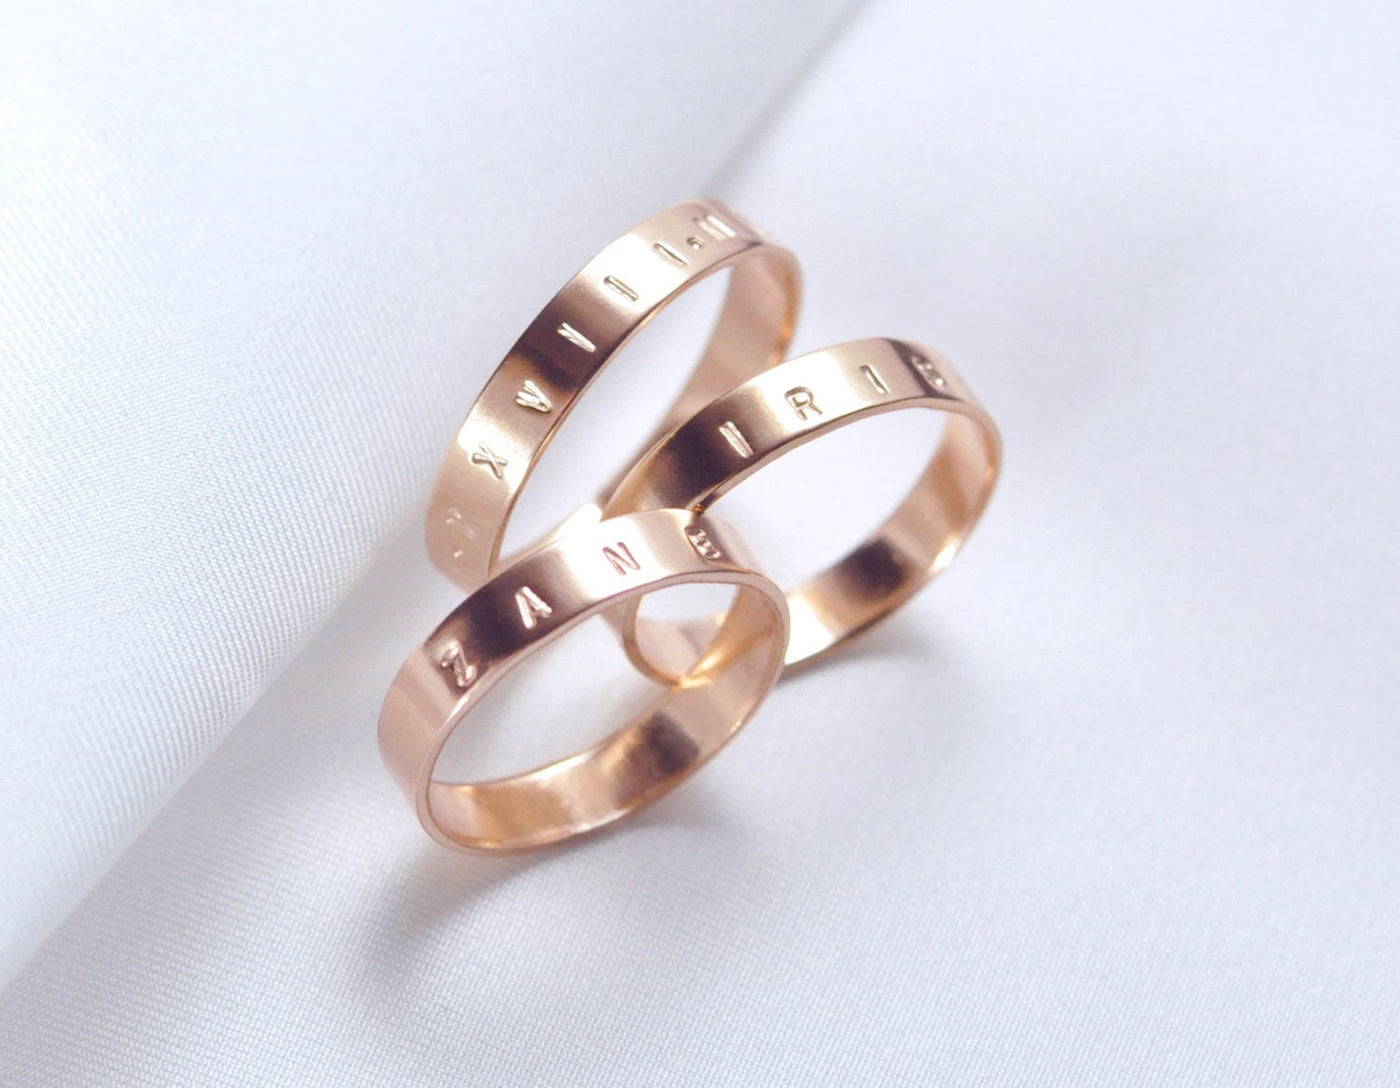 Aven 4 mm Personalized - 14K Rose Gold Ring